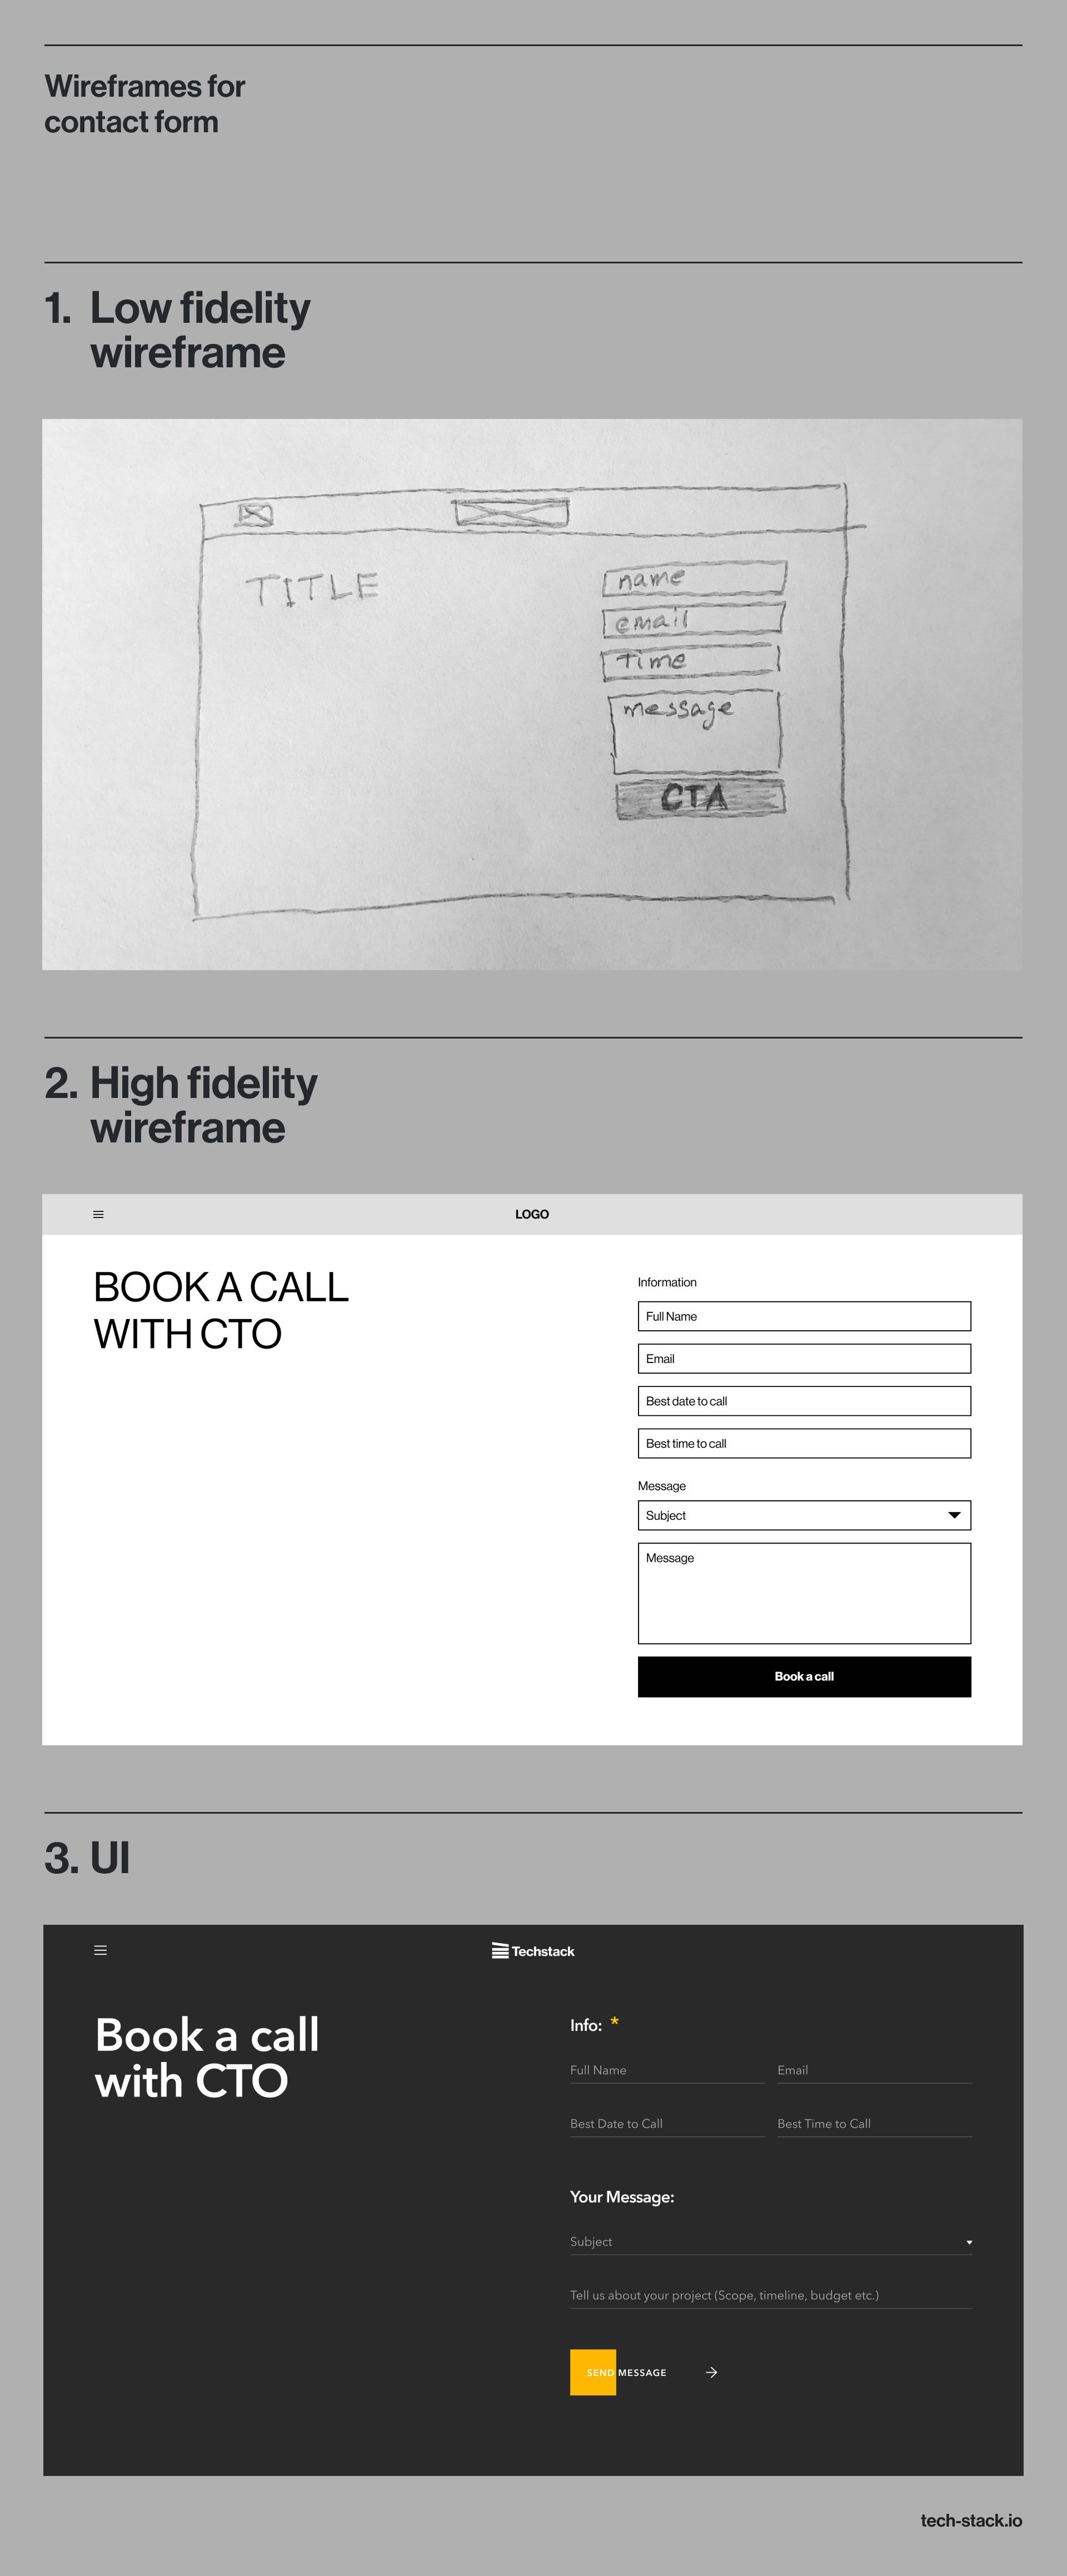 Wireframes for contact form